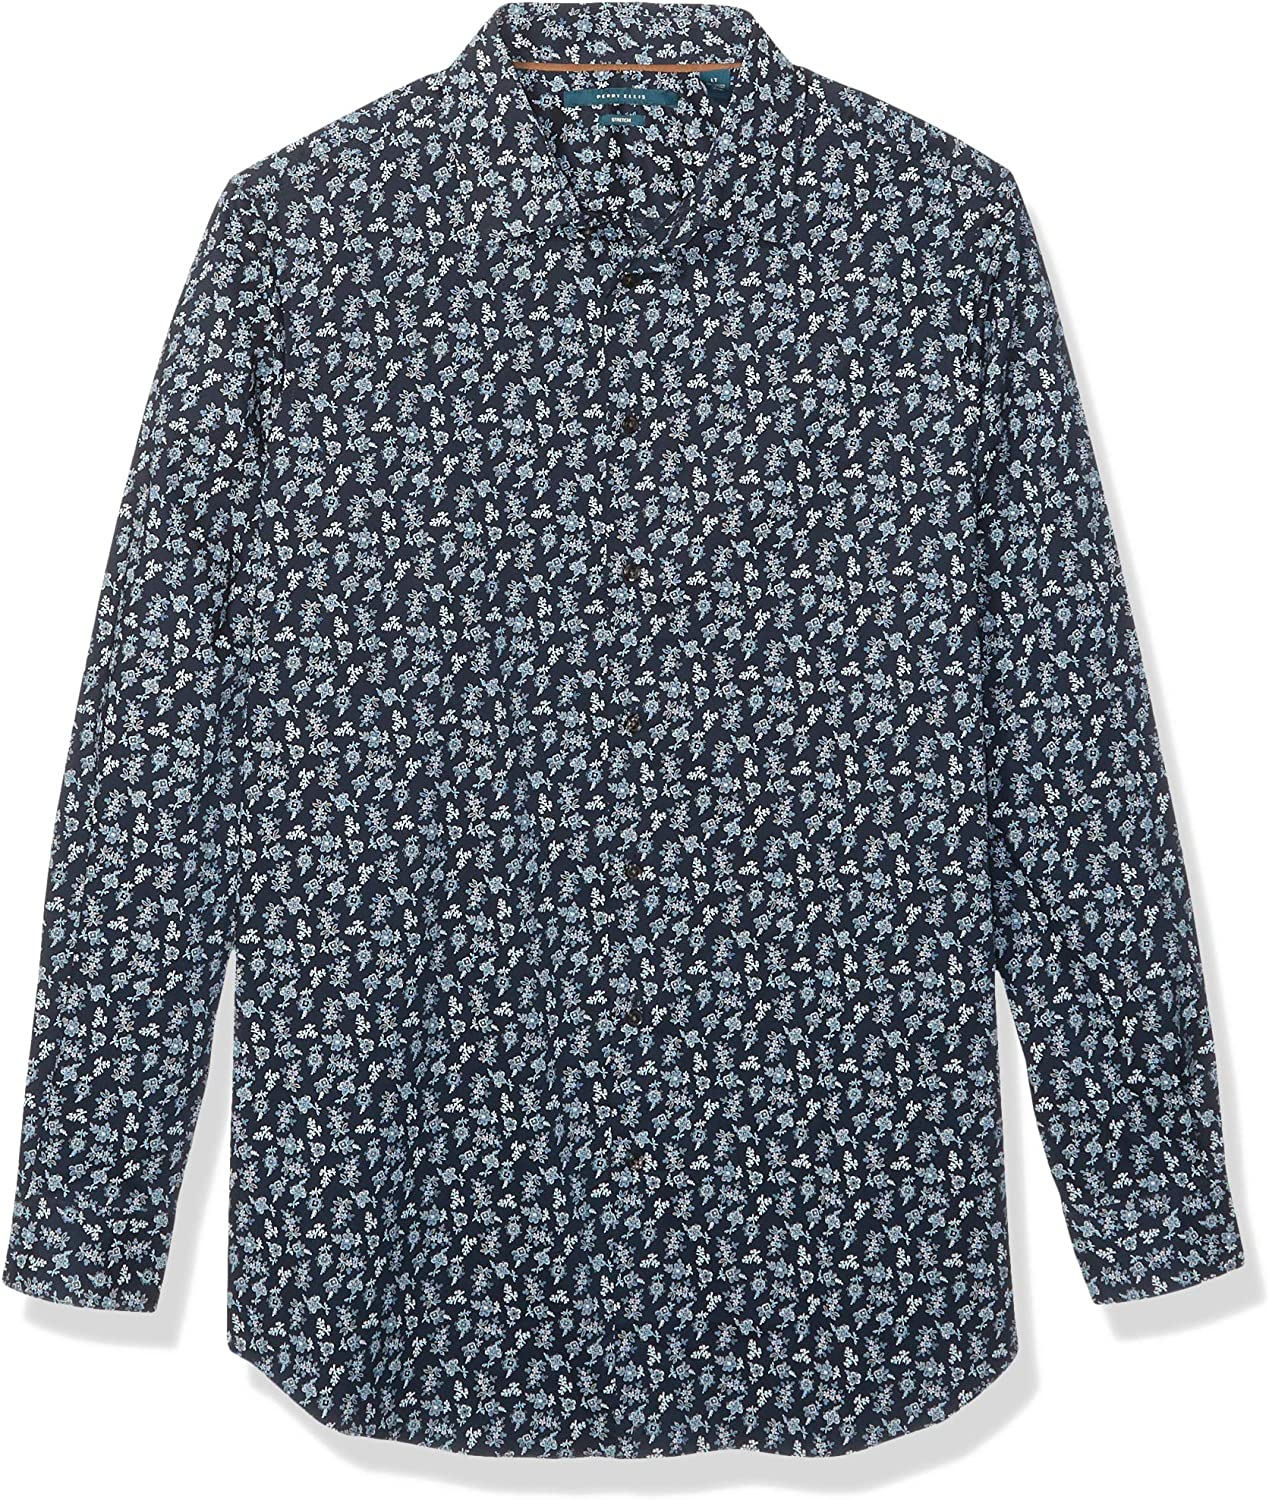 Perry Ellis Men's Big and Tall Floral Print Stretch Long Sleeve Shirt